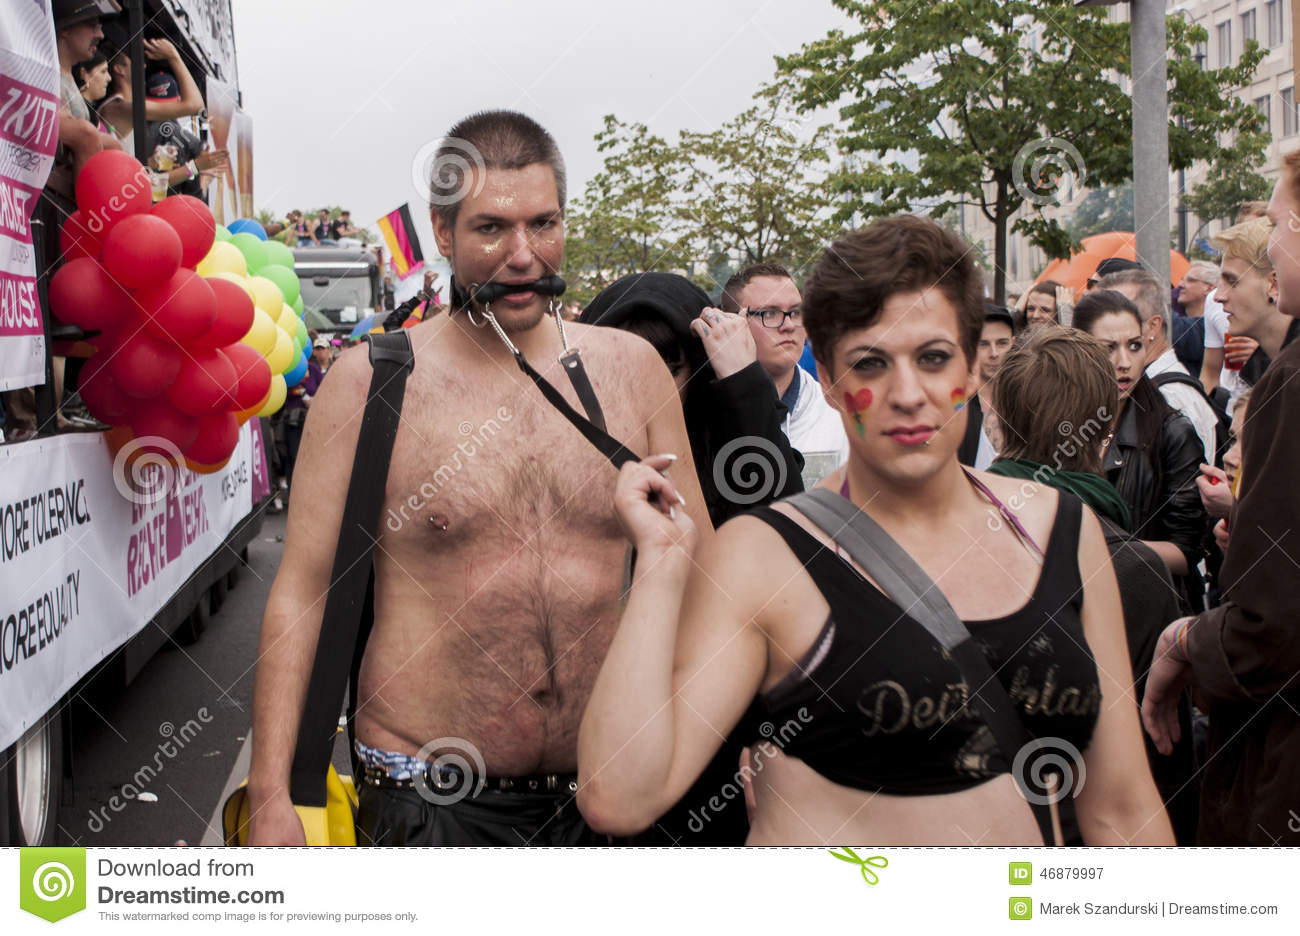 http://www.dreamstime.com/royalty-free-stock-photography-elaborately-dressed-couple-christopher-street-day-parade-berlin-germany-june-crowd-people-participate-celebrates-image46879997